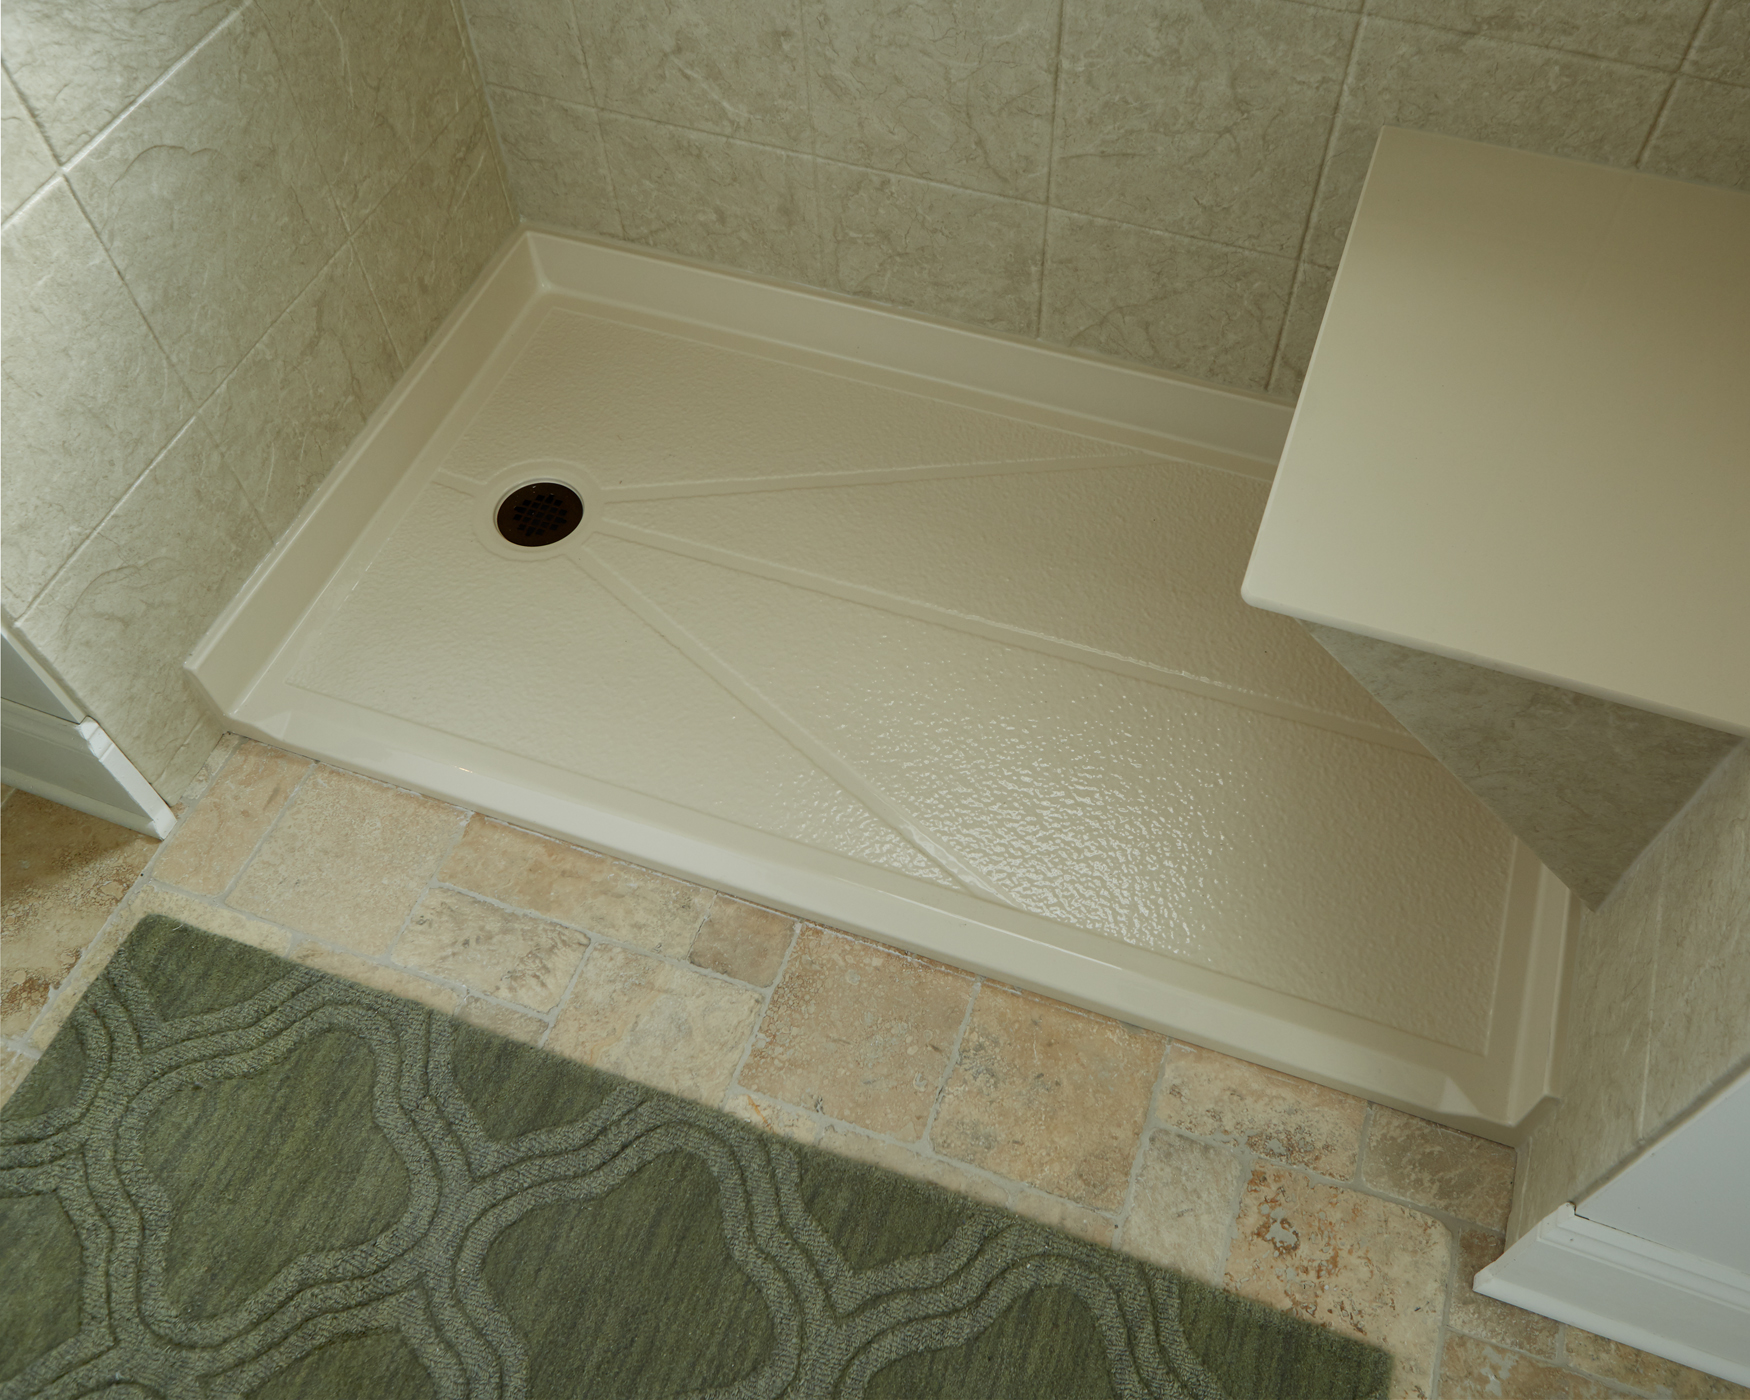 ... Of Maintaining Your Independence With Advanced Age And Disability  Concerns. This Great Option Can Replace Existing Showers Or Tubs Equally  Easily.